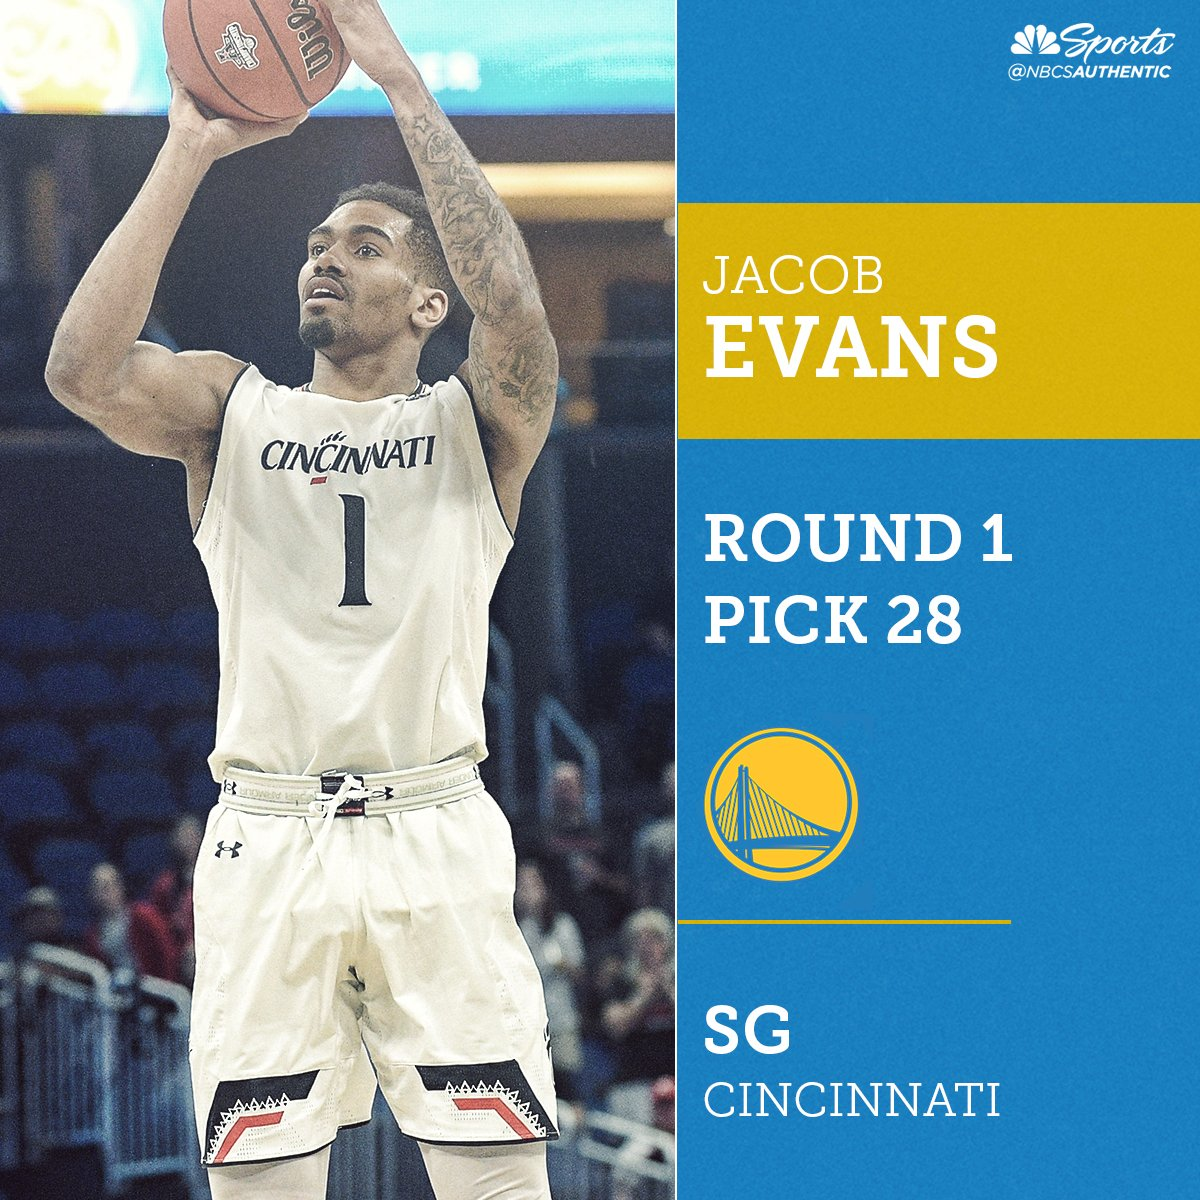 BREAKING: @warriors select Cincinnati wing Jacob Evans with No. 28 overall pick in 2018 NBA Draft bit.ly/2MNCT9G